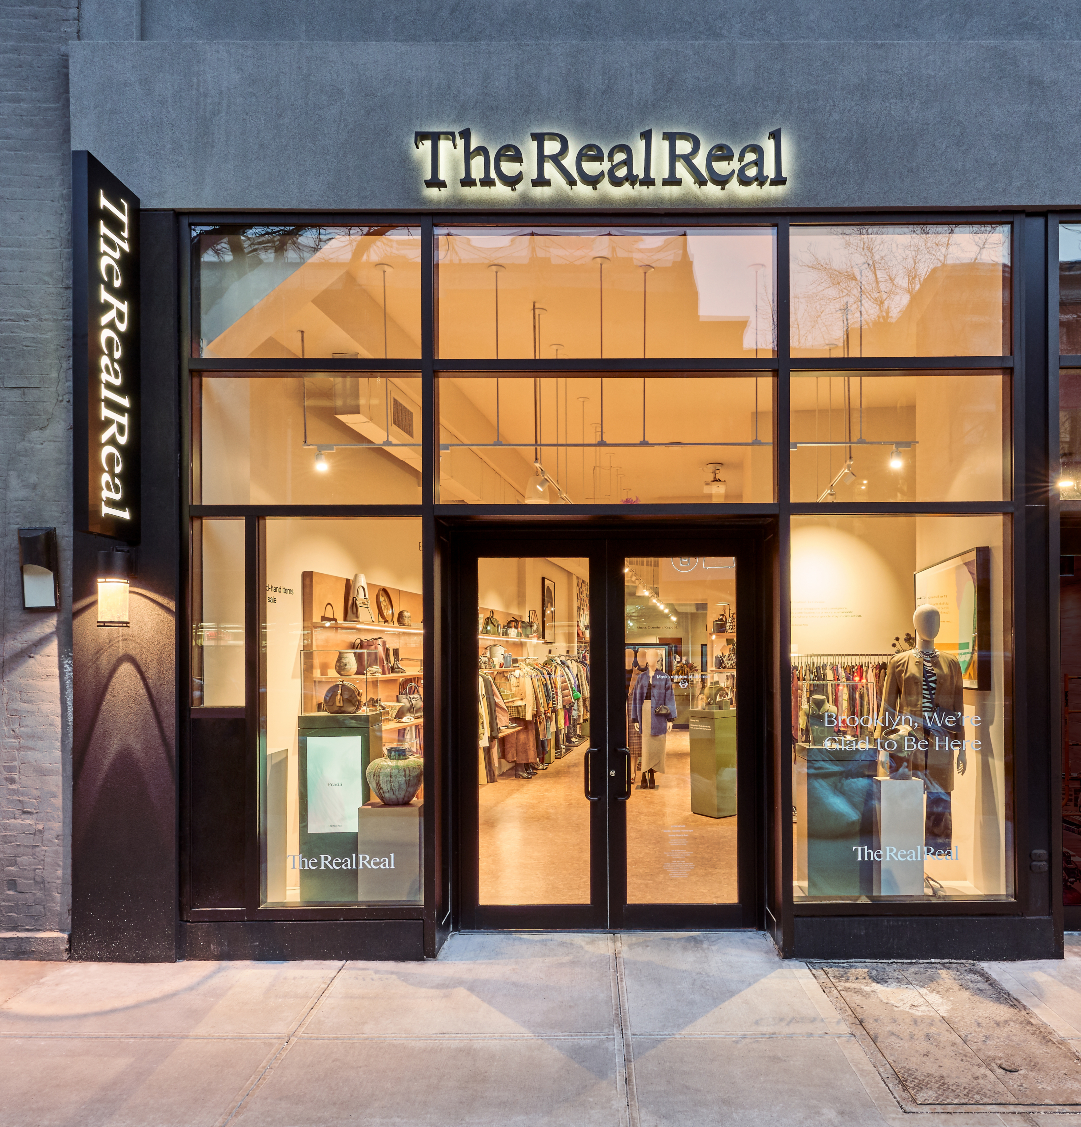 Luxury resale firm The RealReal plans to open 10 stores in 2021, starting with the opening of its new Brooklyn store in Cobble Hill.